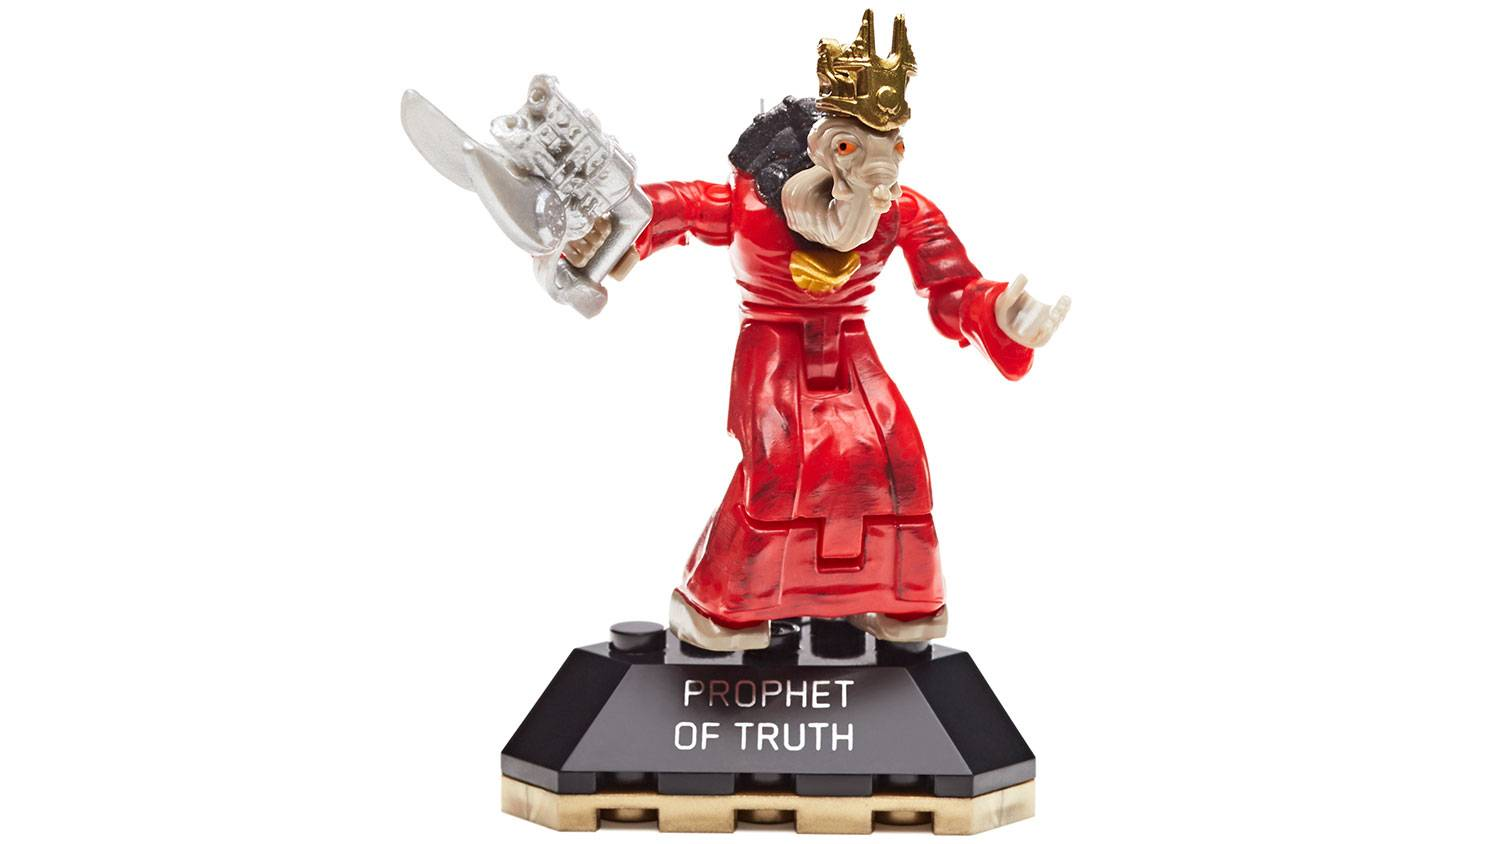 Prophet of Truth